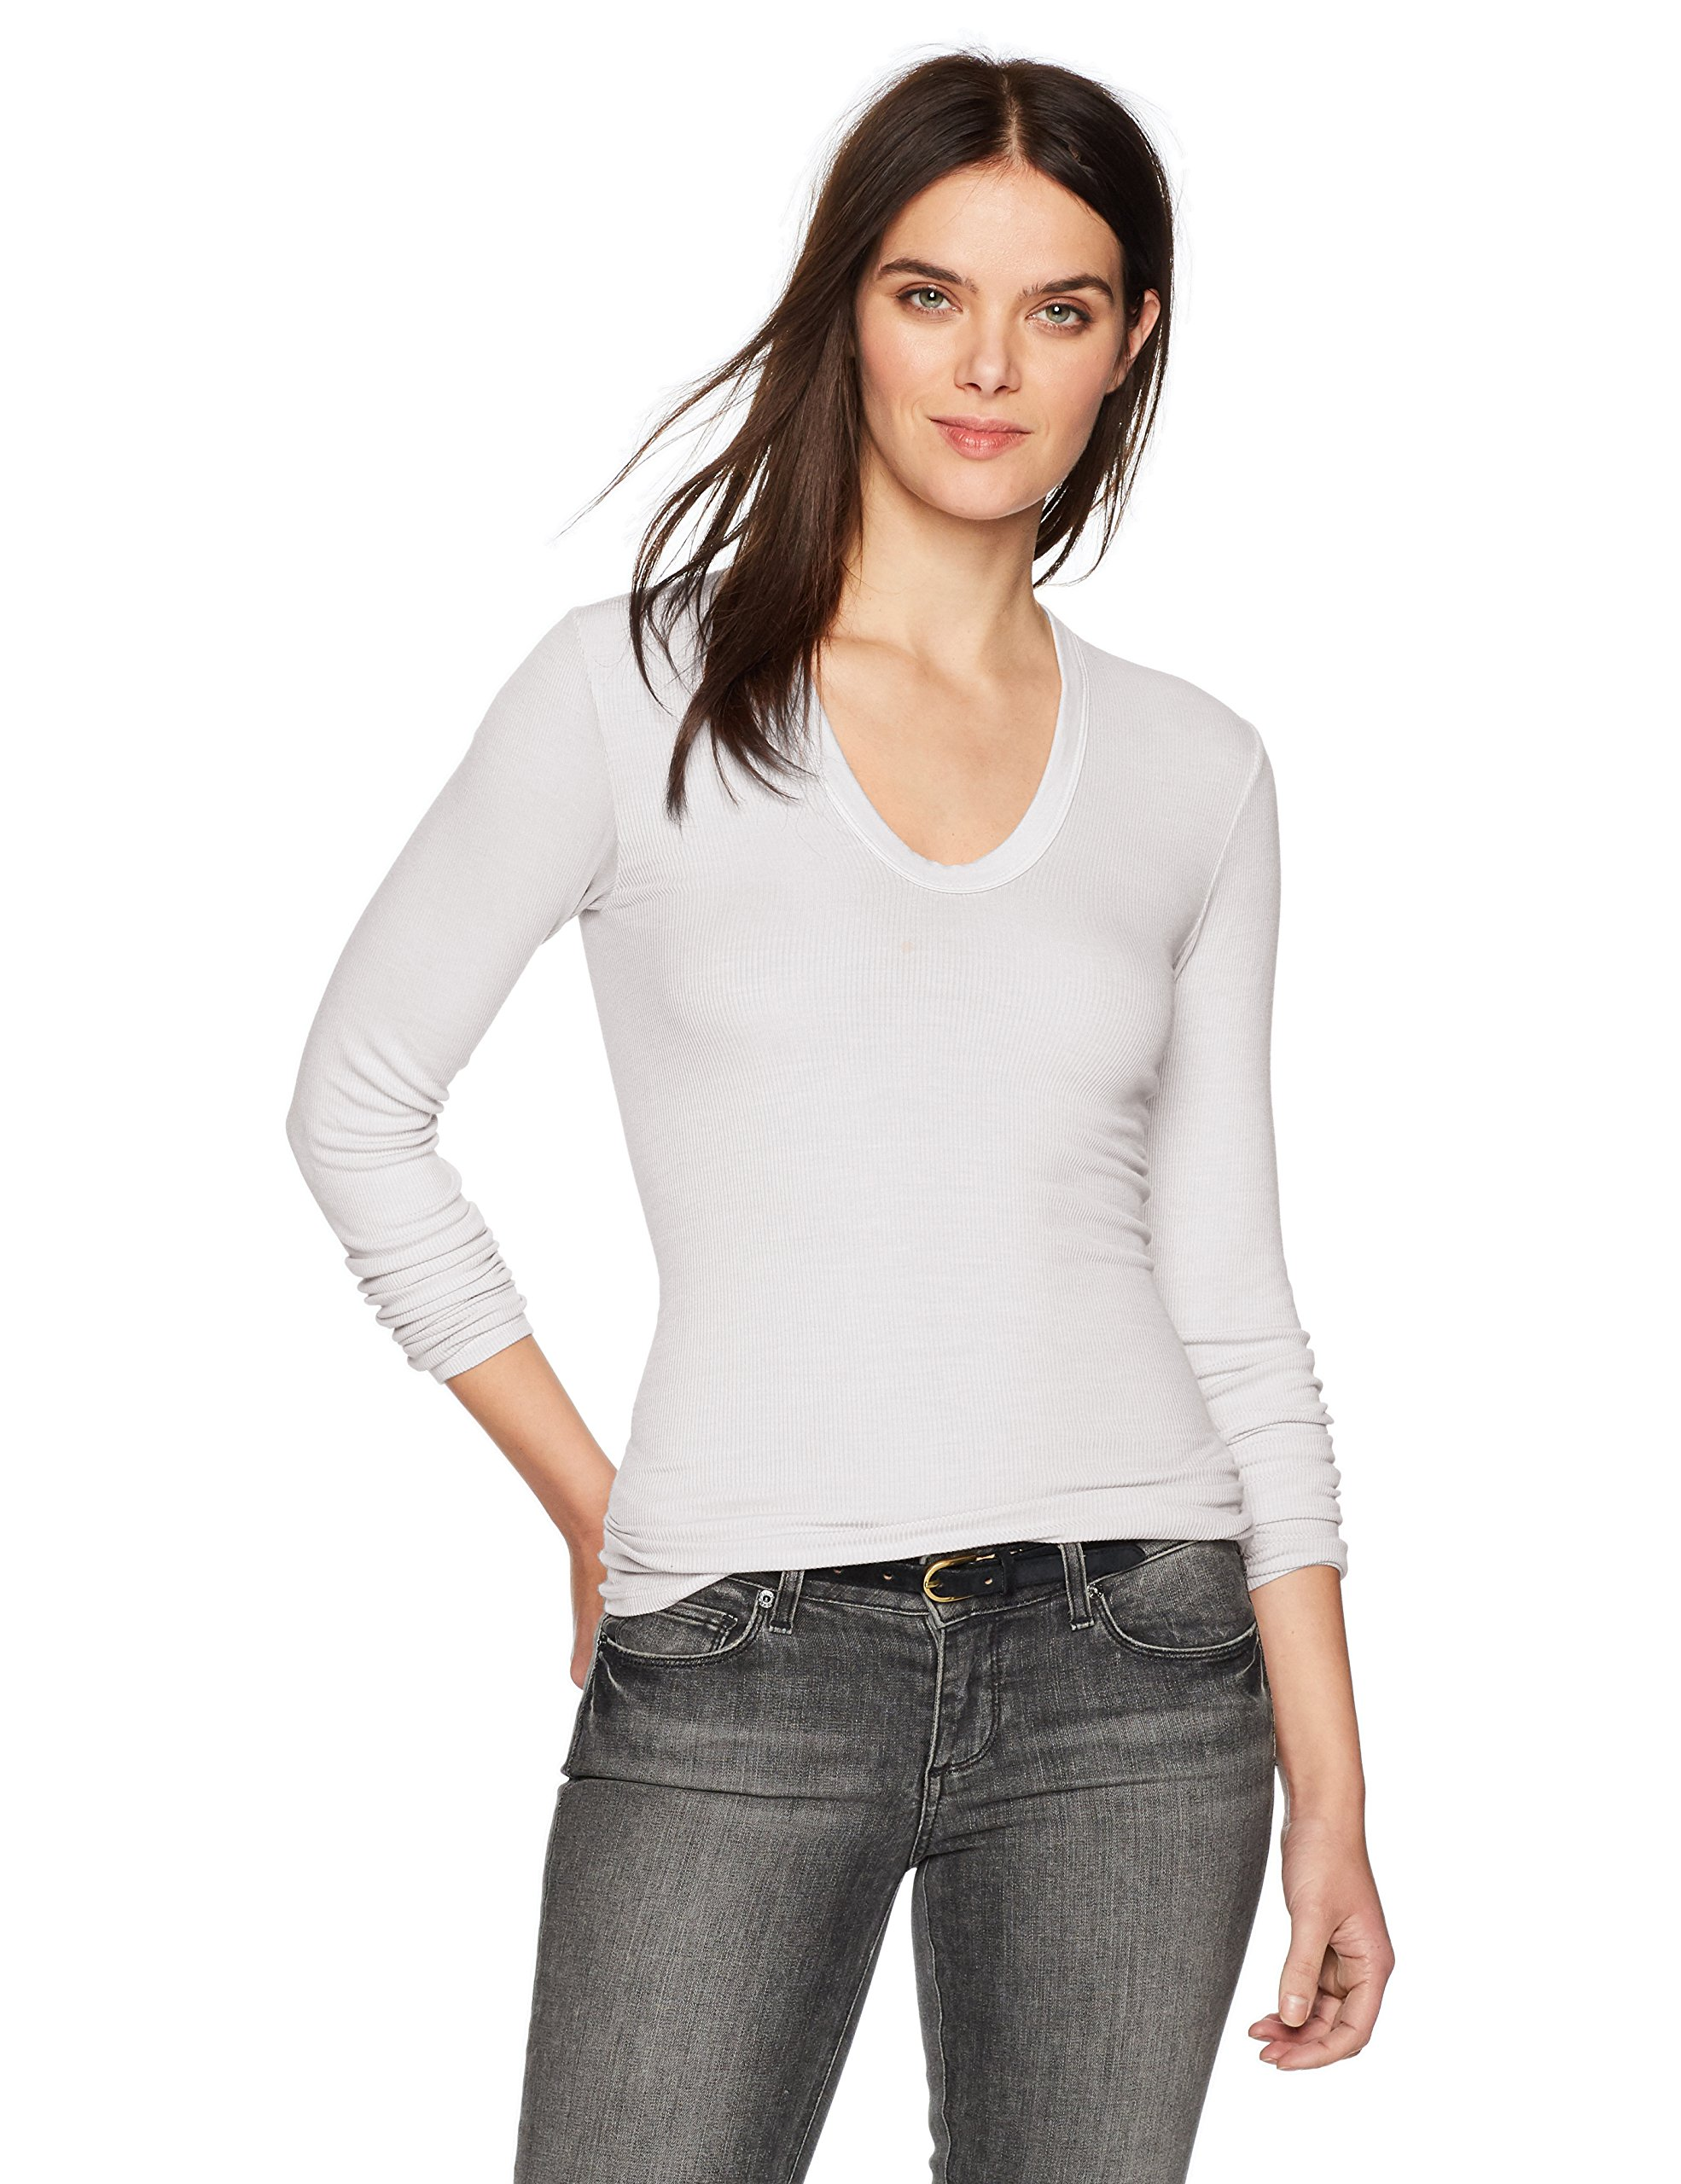 Enza Costa Women's Rib Fitted Long Sleeve U-Neck Top, White, XS by Enza Costa